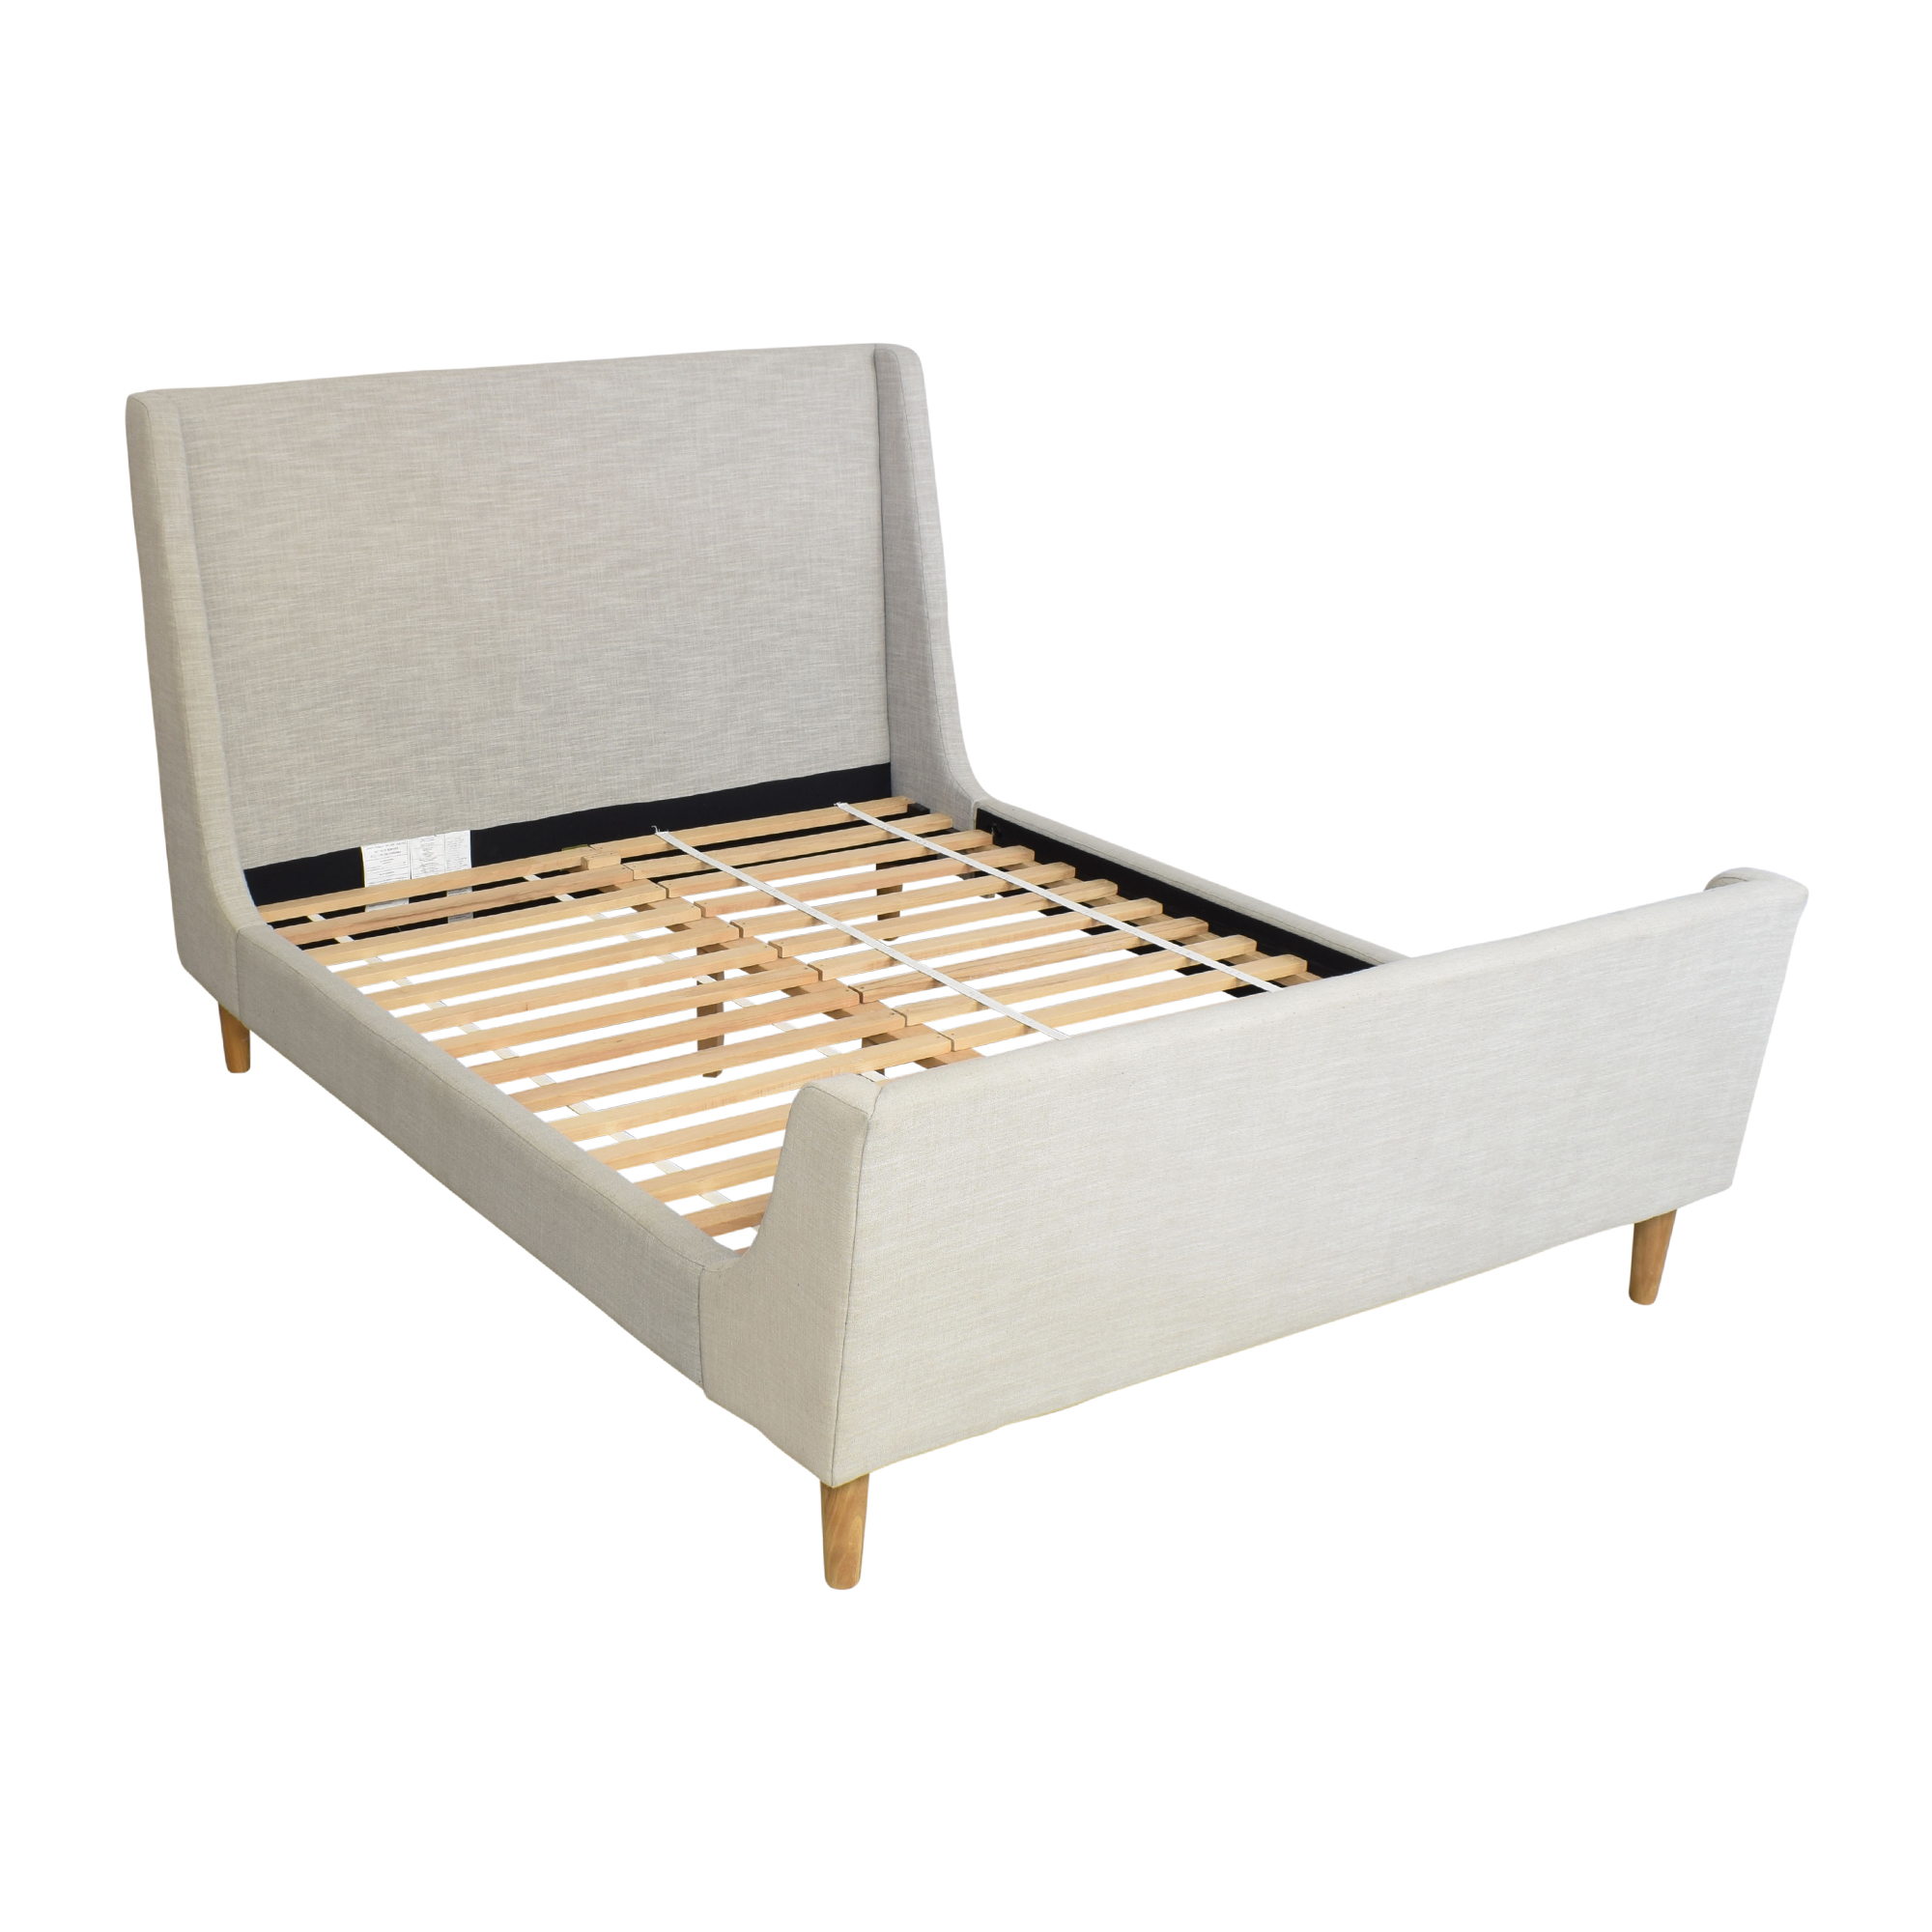 West Elm West Elm Upholstered Sleigh Queen Bed pa